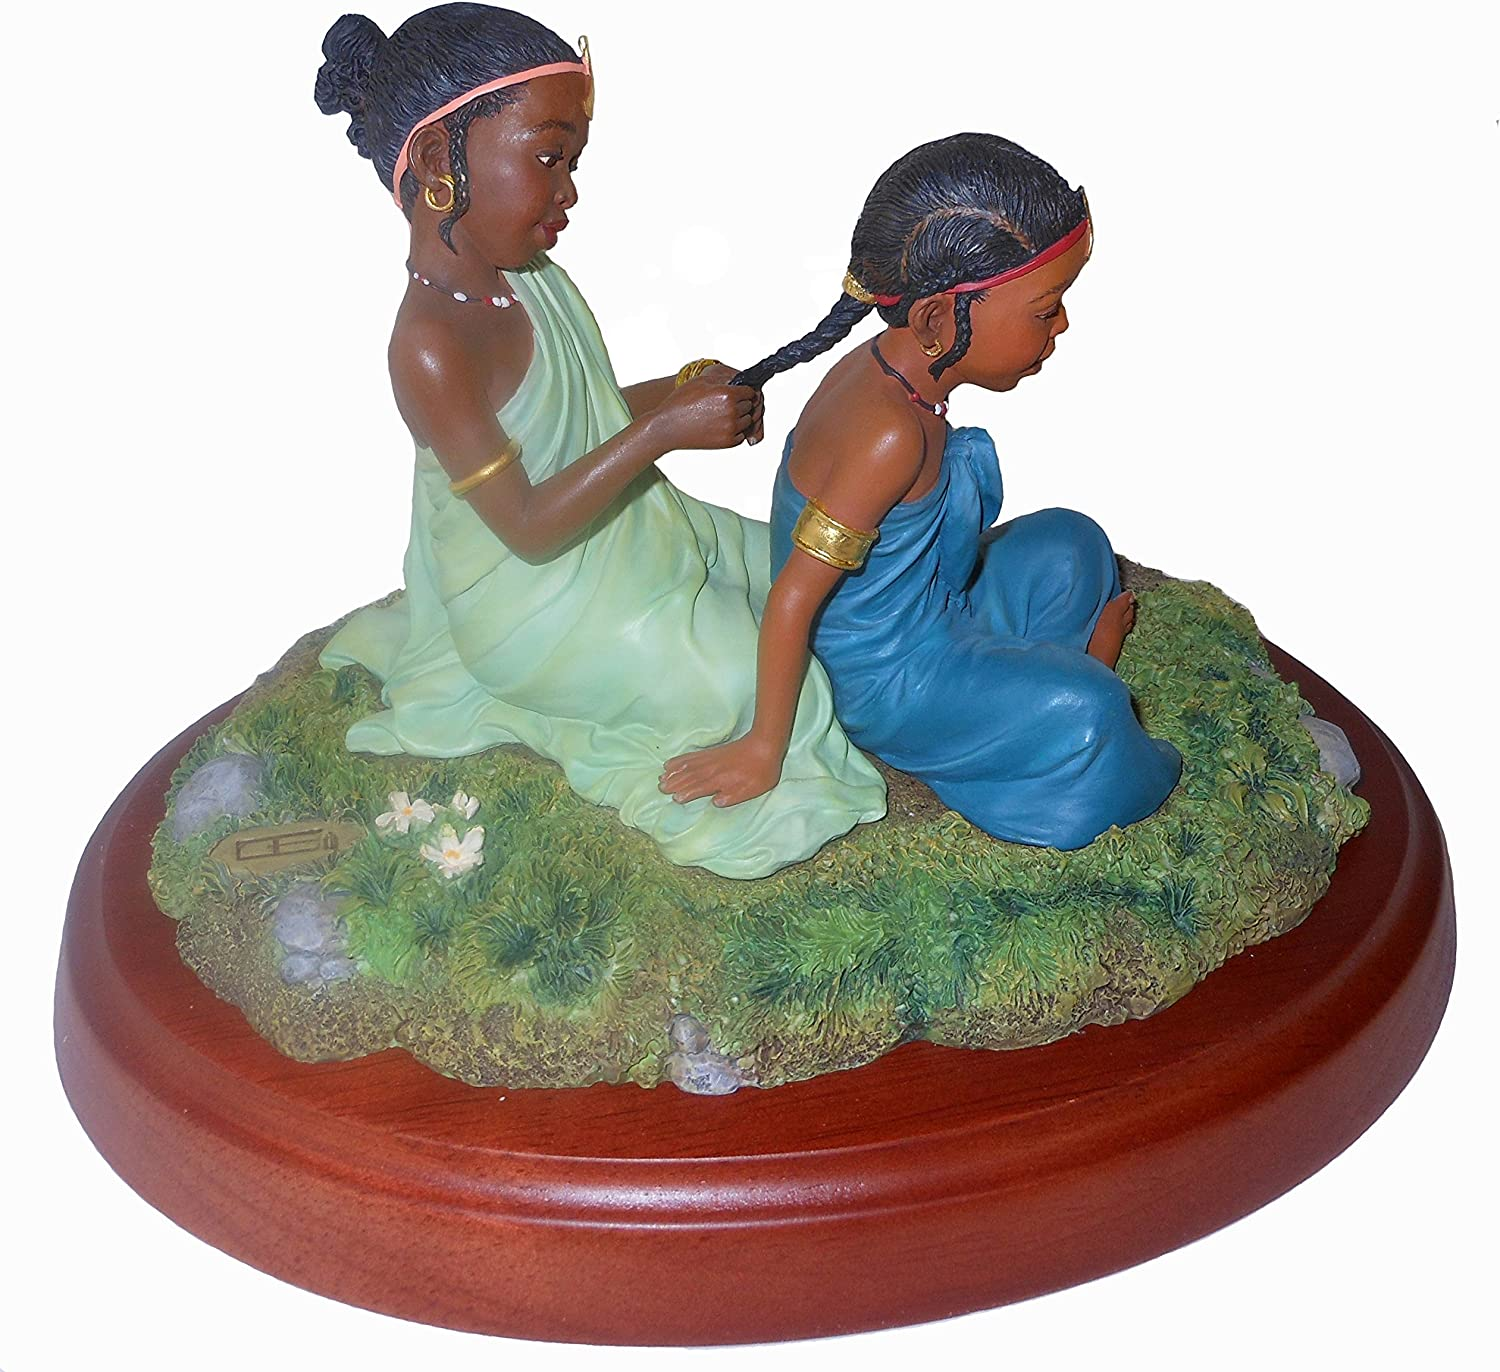 """Thomas Blackshear Sisters Forever in Childhood (#37023) Retired/Vintage Ebony Visions Figurine 